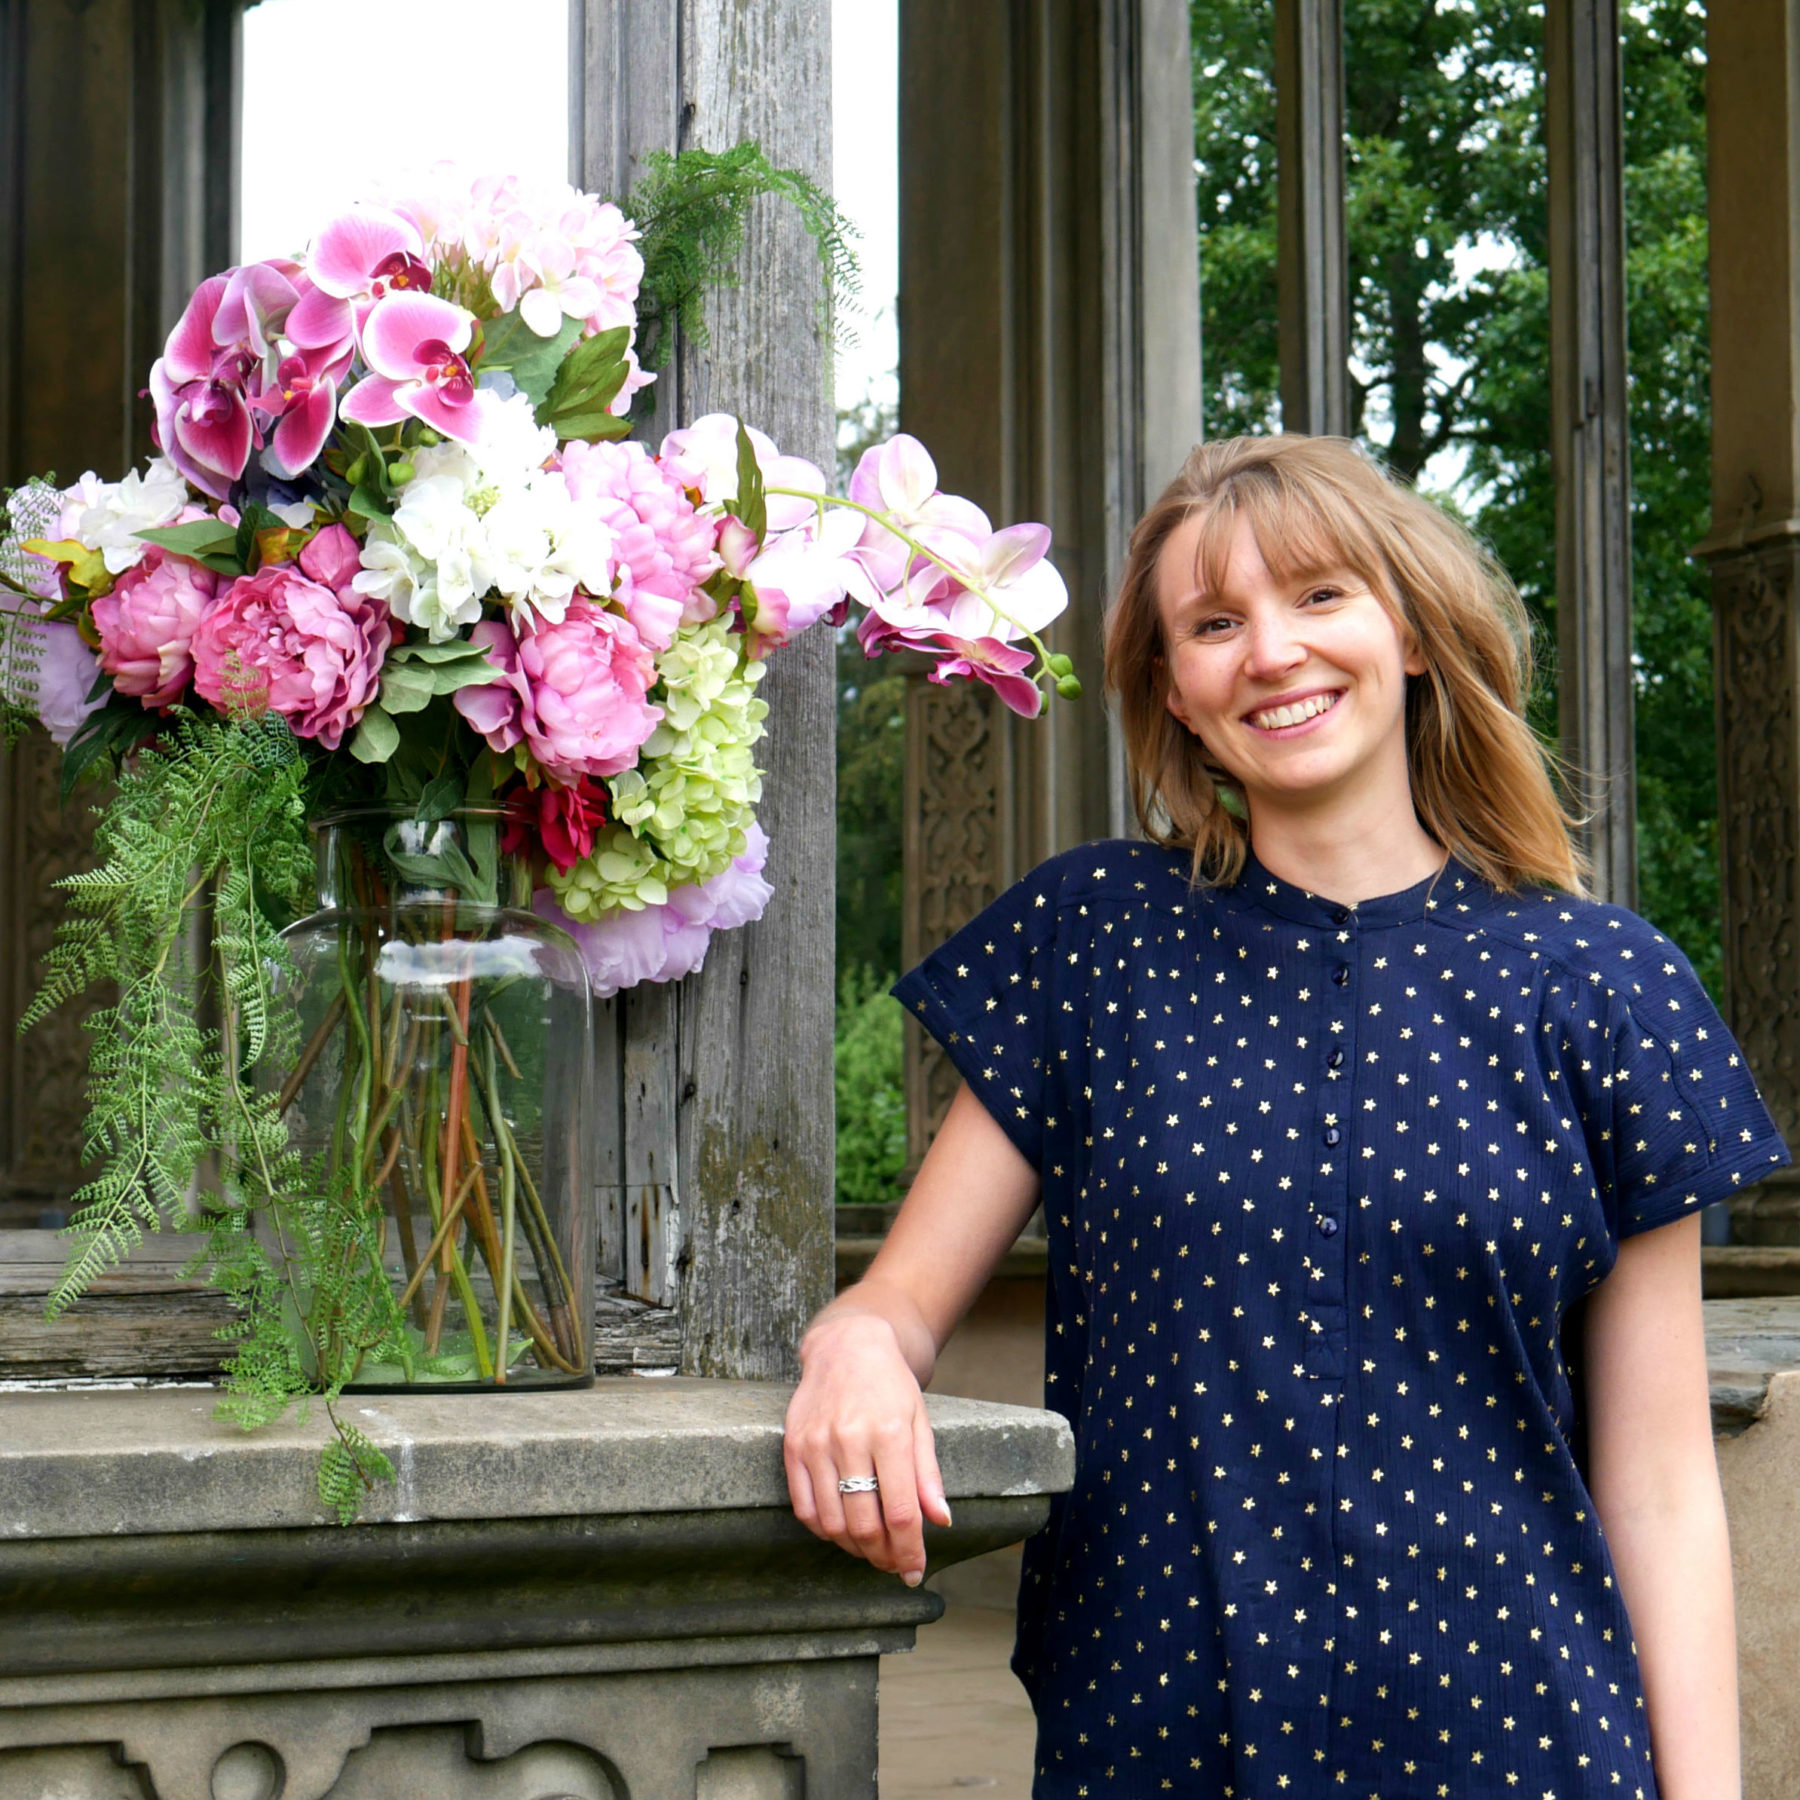 Meet Thea Griffiths, our Wedding & Events Coordinator at Restoration Yard, Dalkeith Country Park